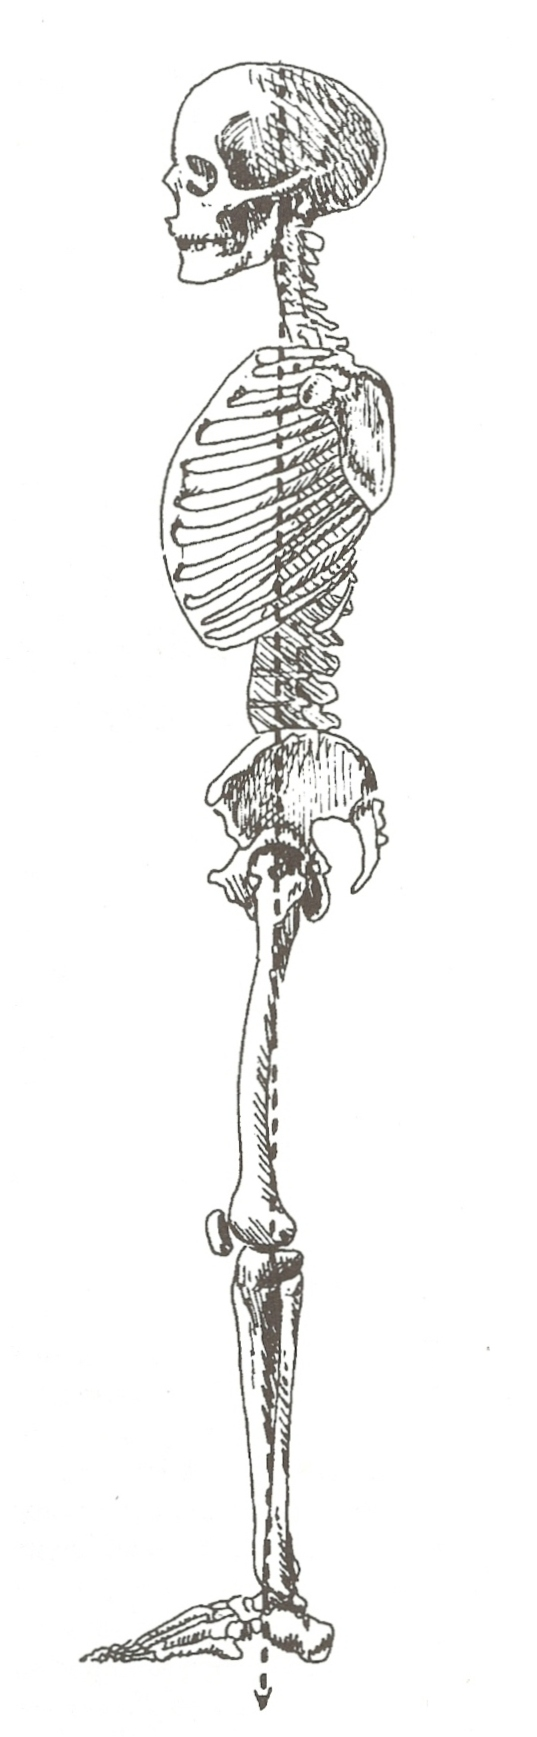 The skeleton is standing with the weight transferred down through the front part of the spine